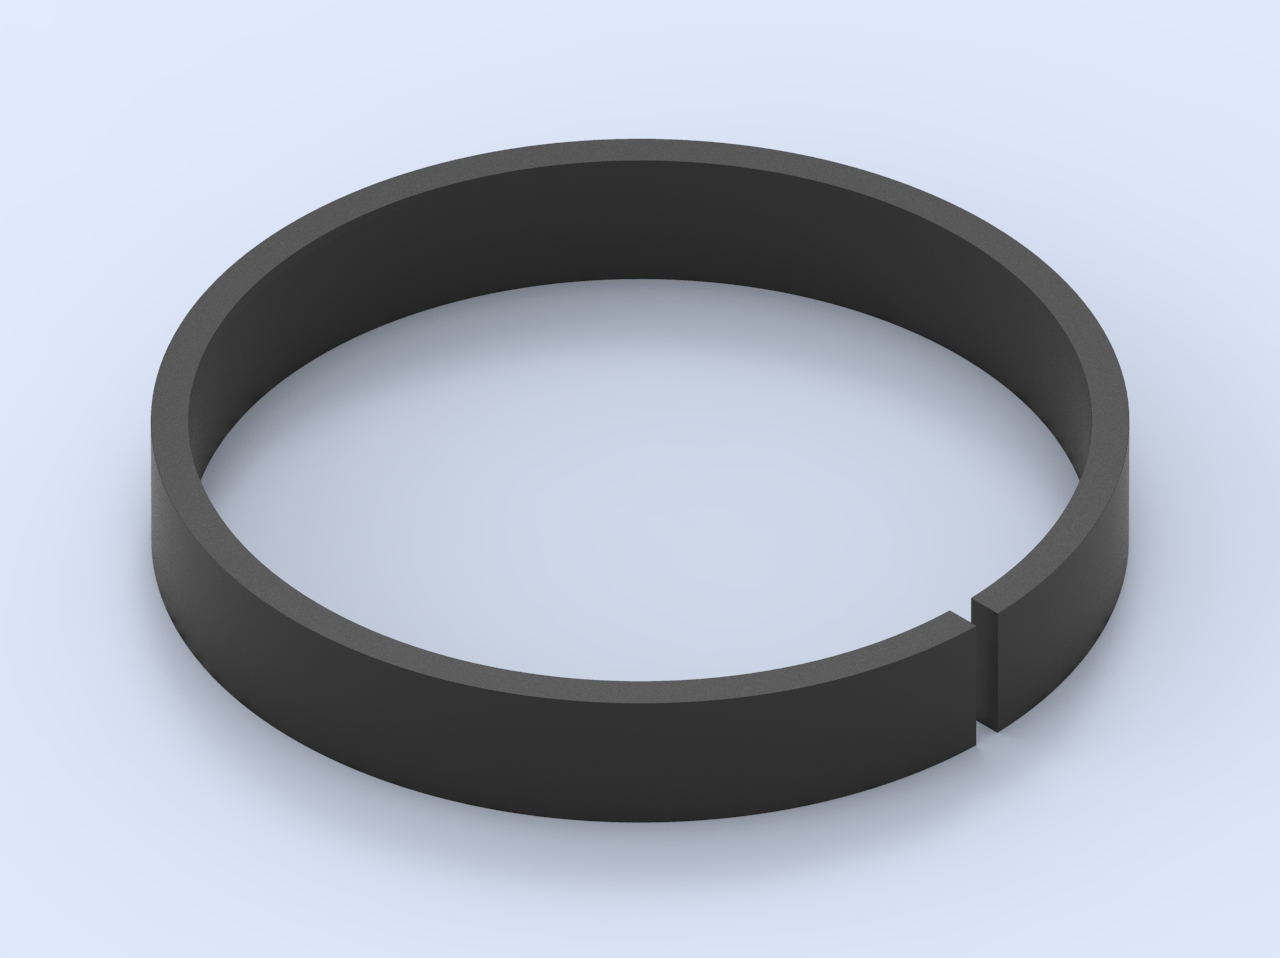 Guide Ring Version Straight Joint